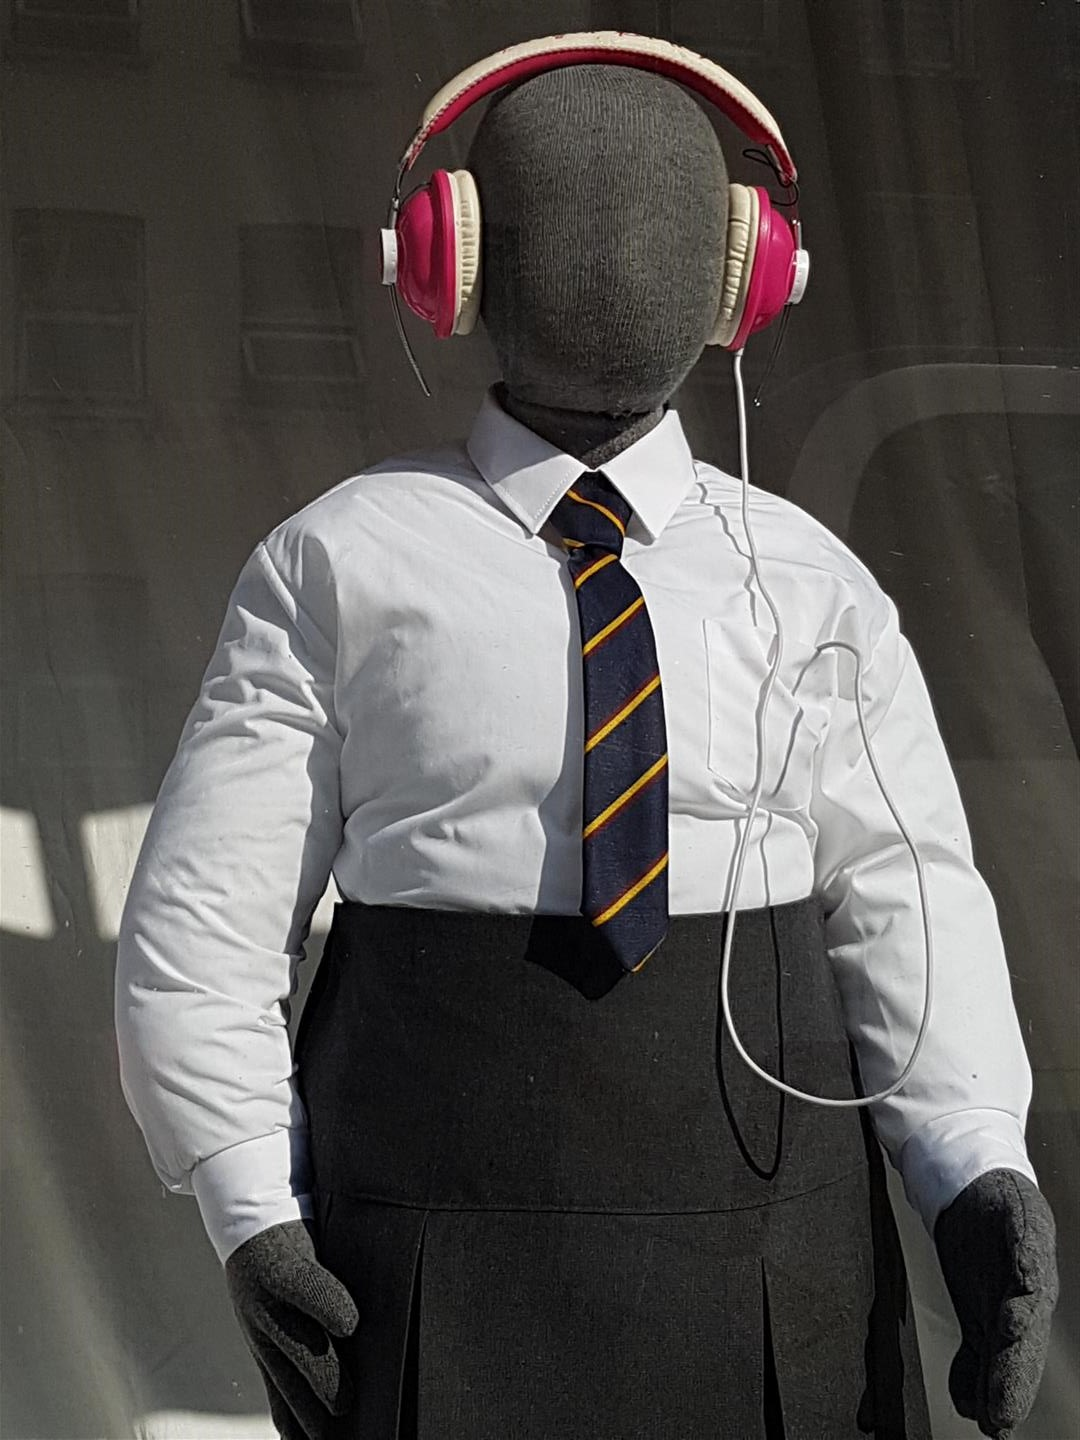 An obese mannequin in tight girls school uniform and pink headphones in a window display.